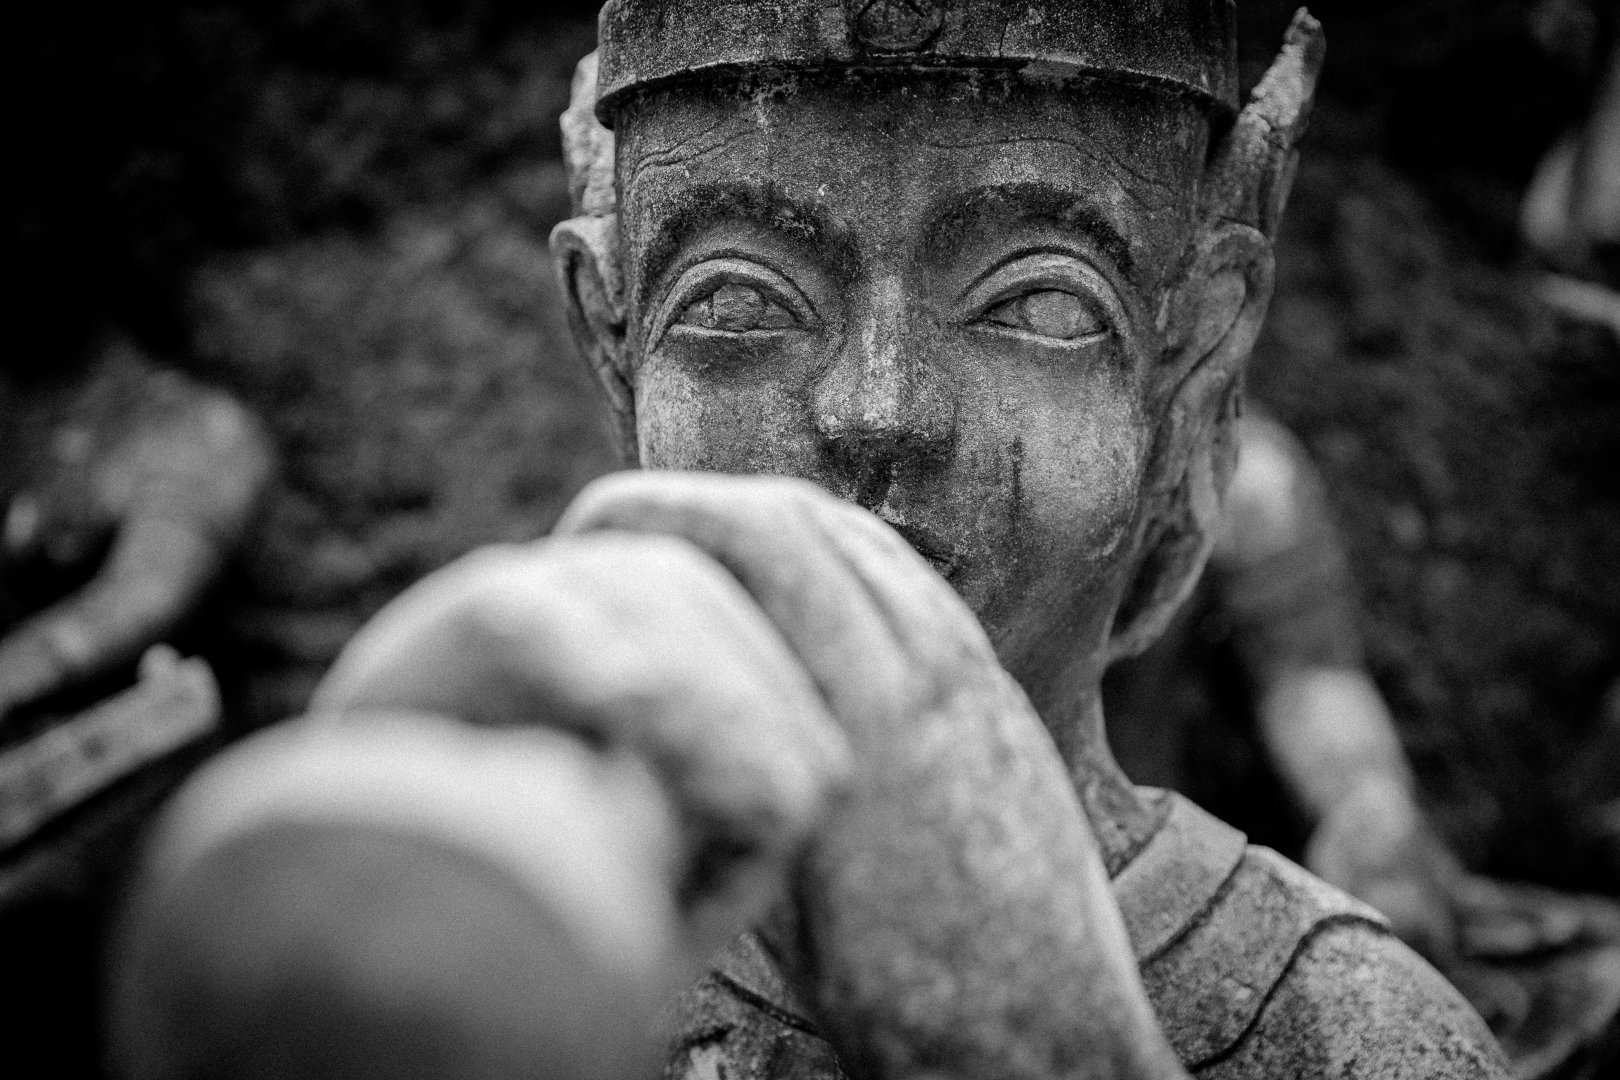 Black People Black-and-white Monochrome photography Skin Monochrome Statue Eye Human Forehead Wrinkle Photography Stock photography Hand Human body Temple Sculpture Art Style World Portrait photography Stone carving